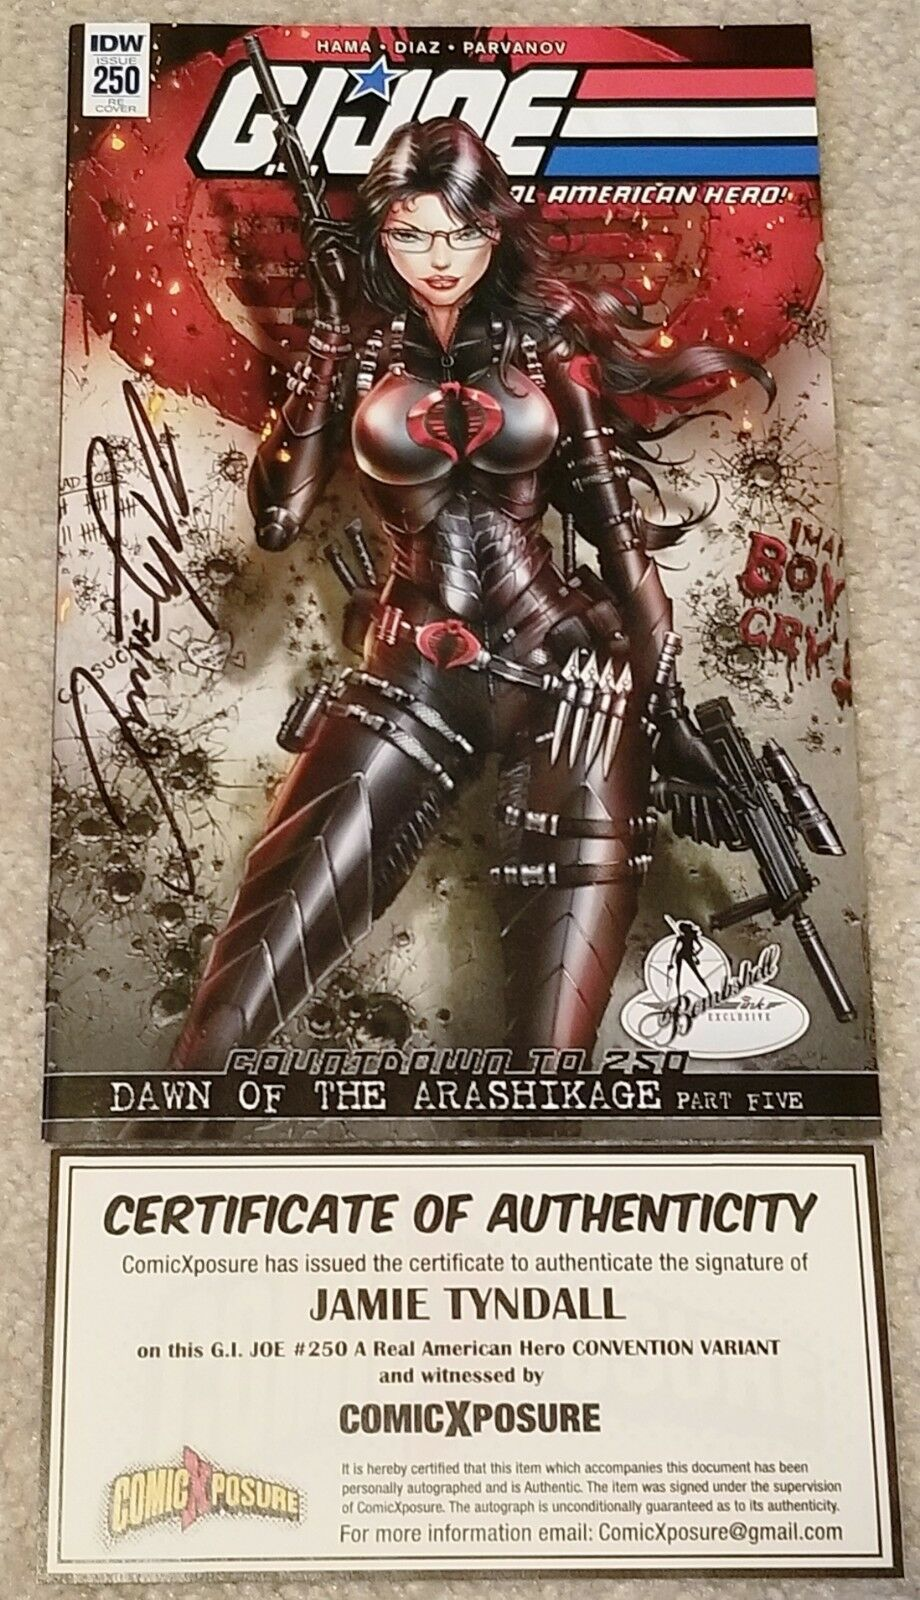 G.I. JOE #250 JAMIE TYNDALL SIGNED BARONESS CONVENTION EXCLUSIVE VARIANT COA